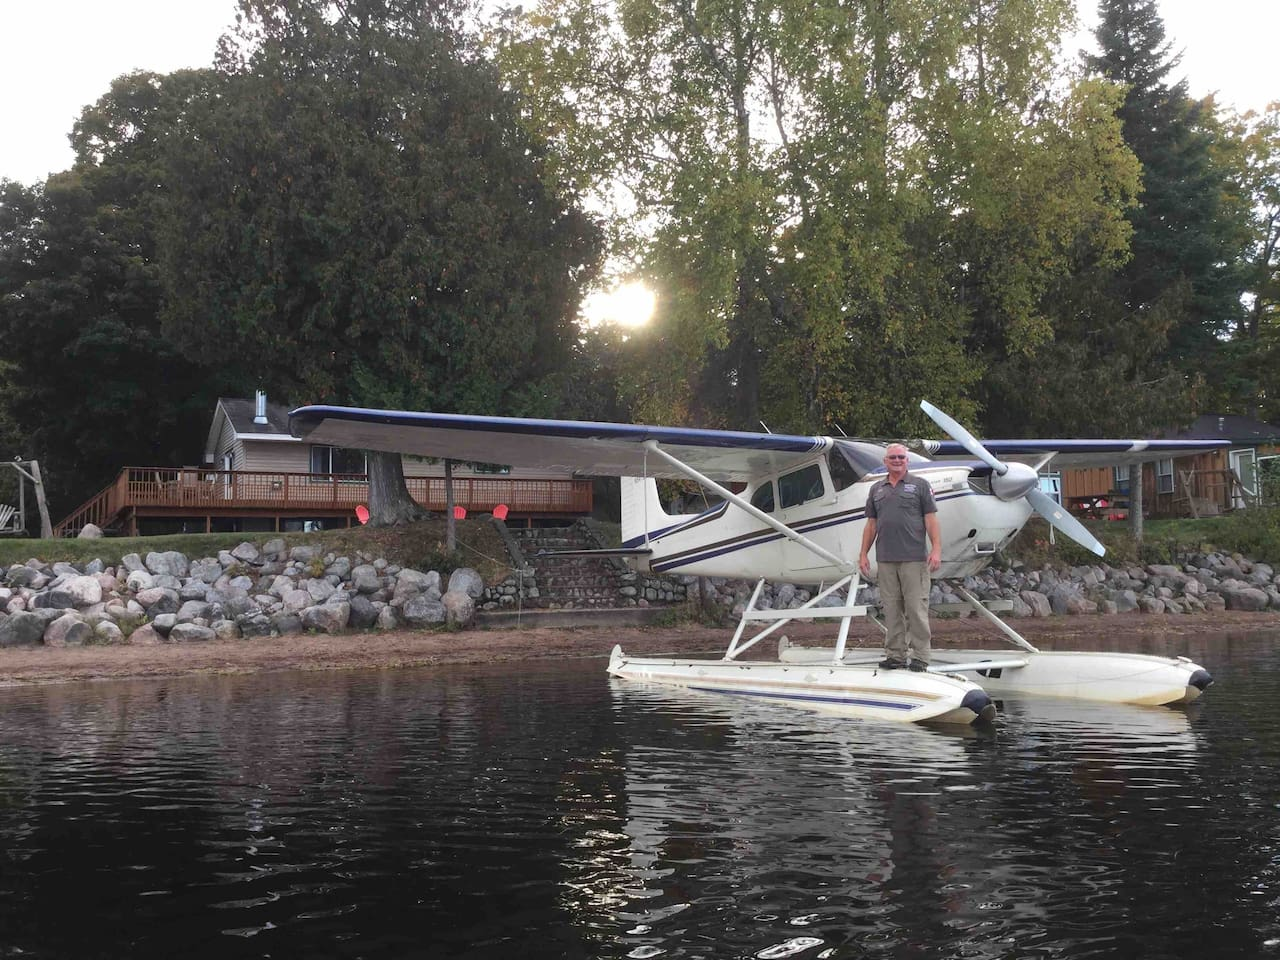 We offer scenic flights in a seaplane.   Bill Lauer is an experienced pilot who is certified for scenic flights.